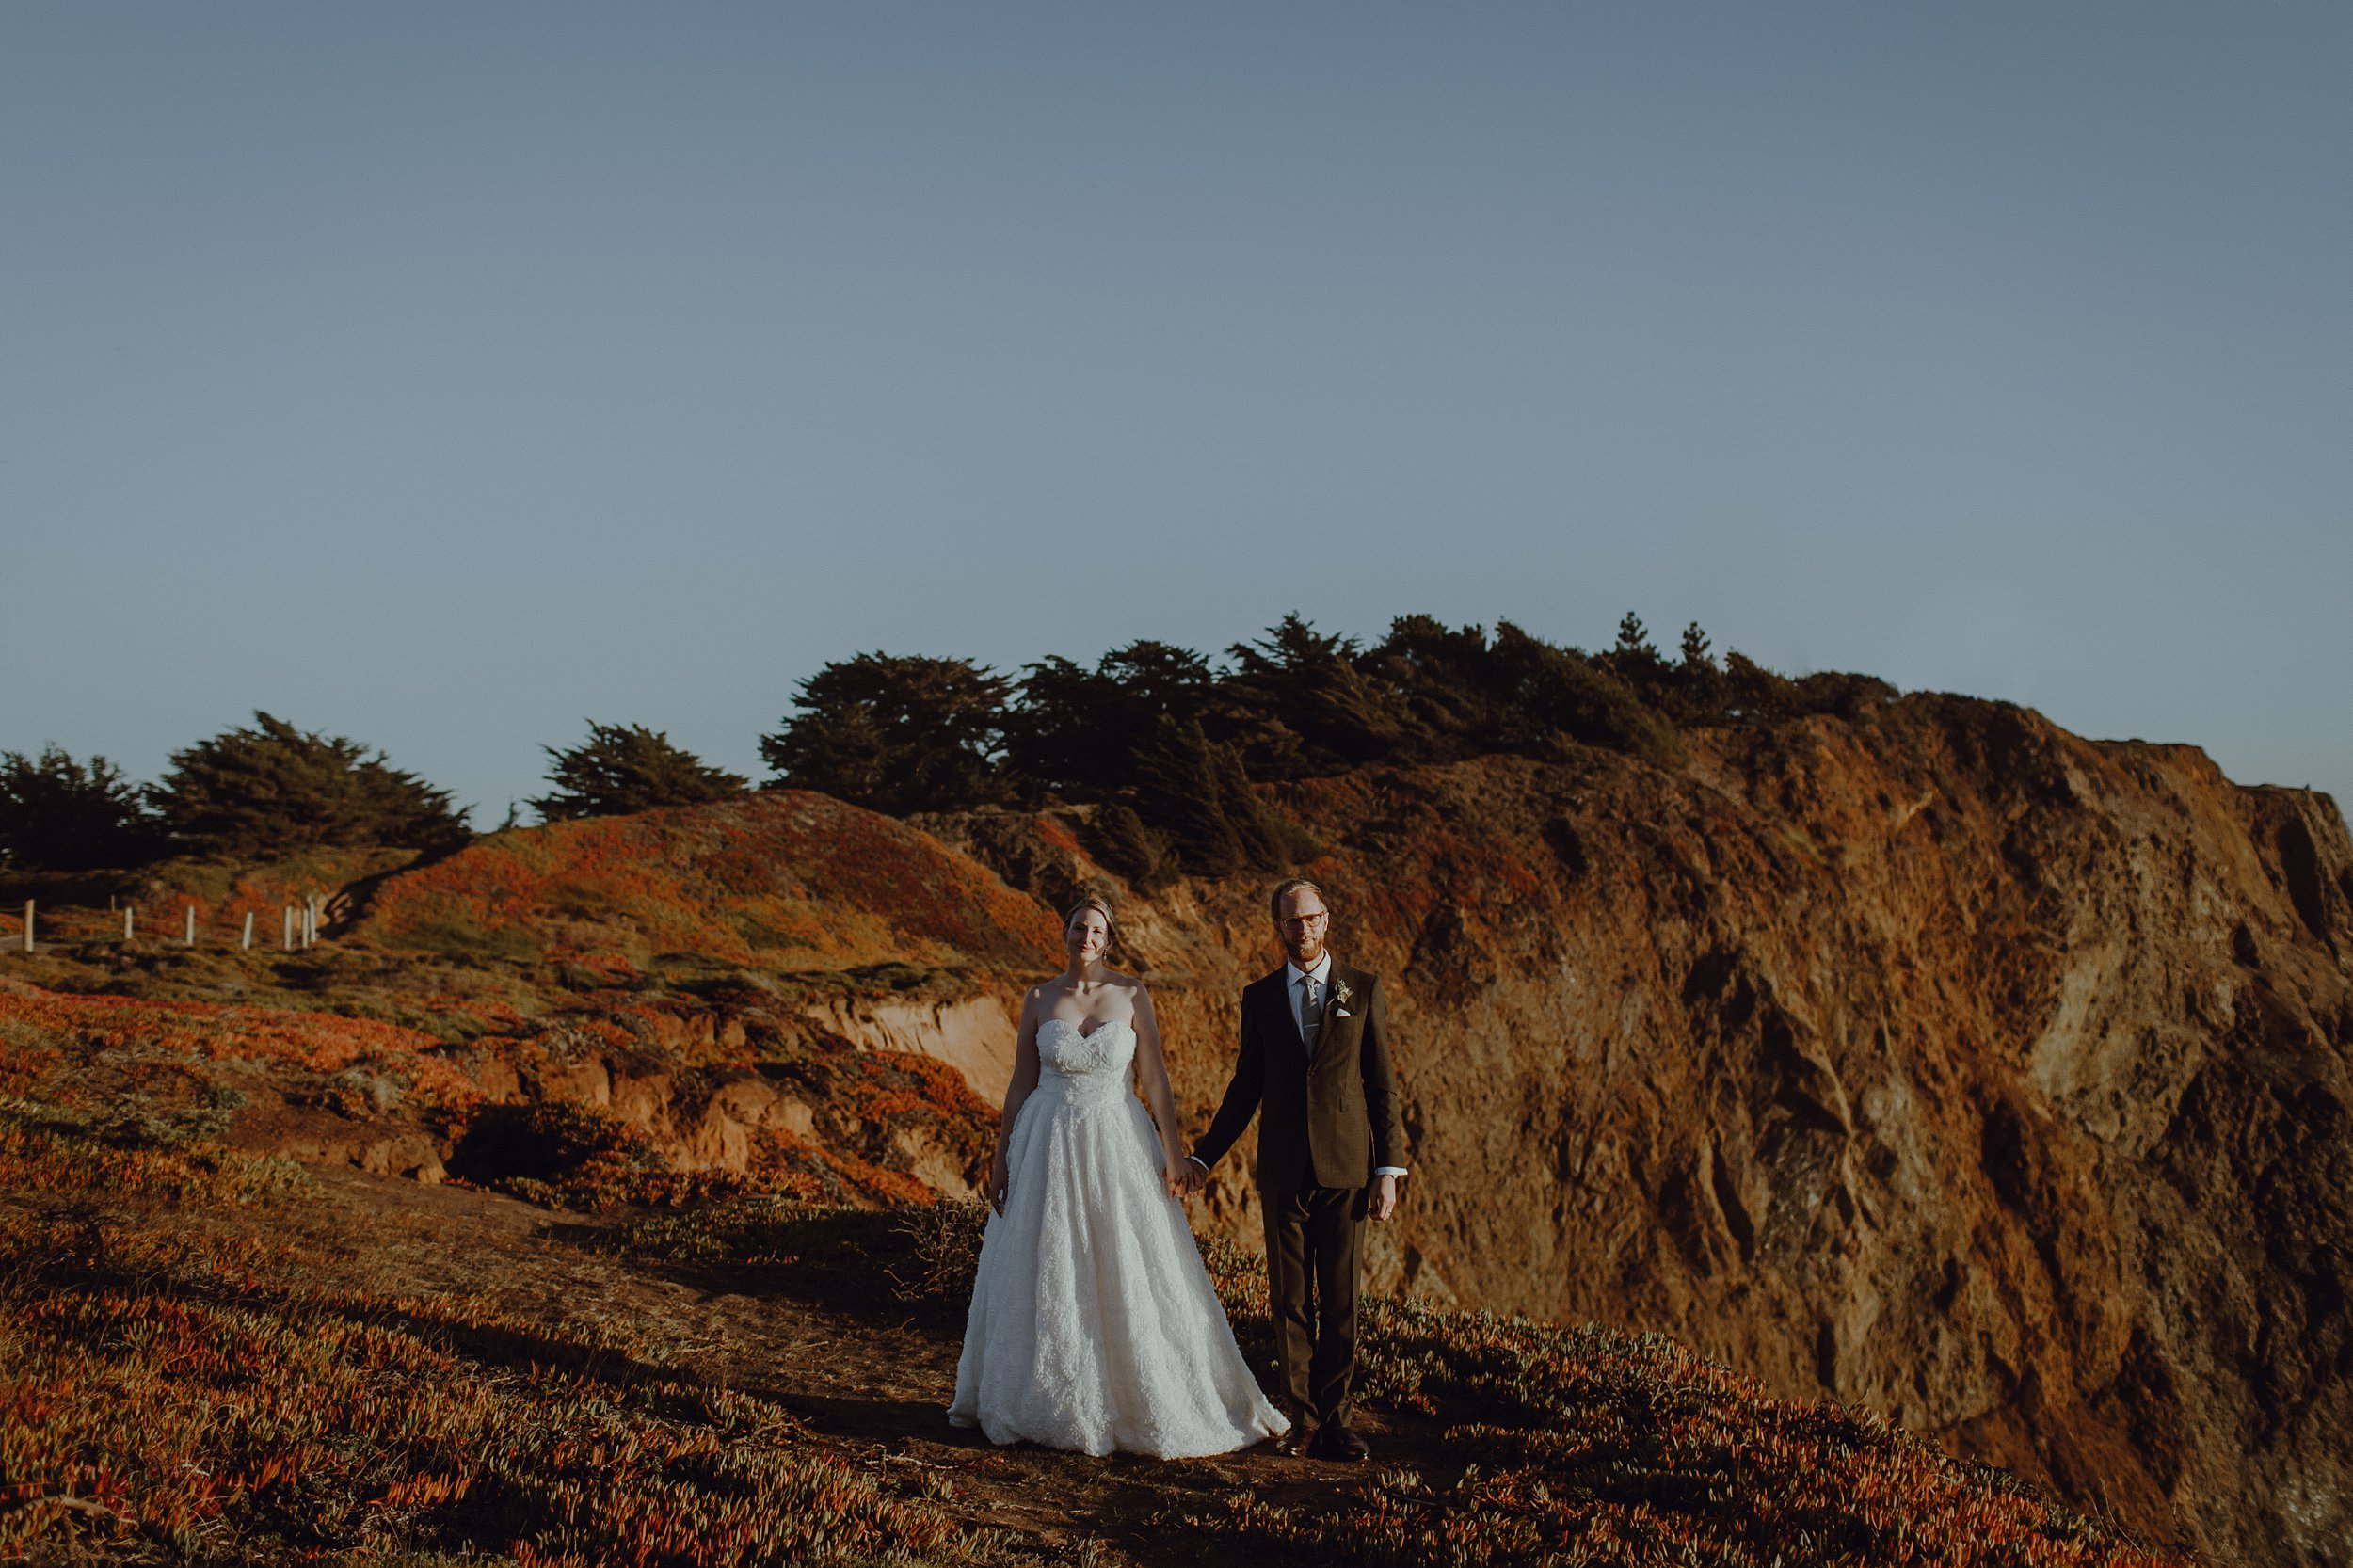 A bride and groom portraits at the Marin Headlands